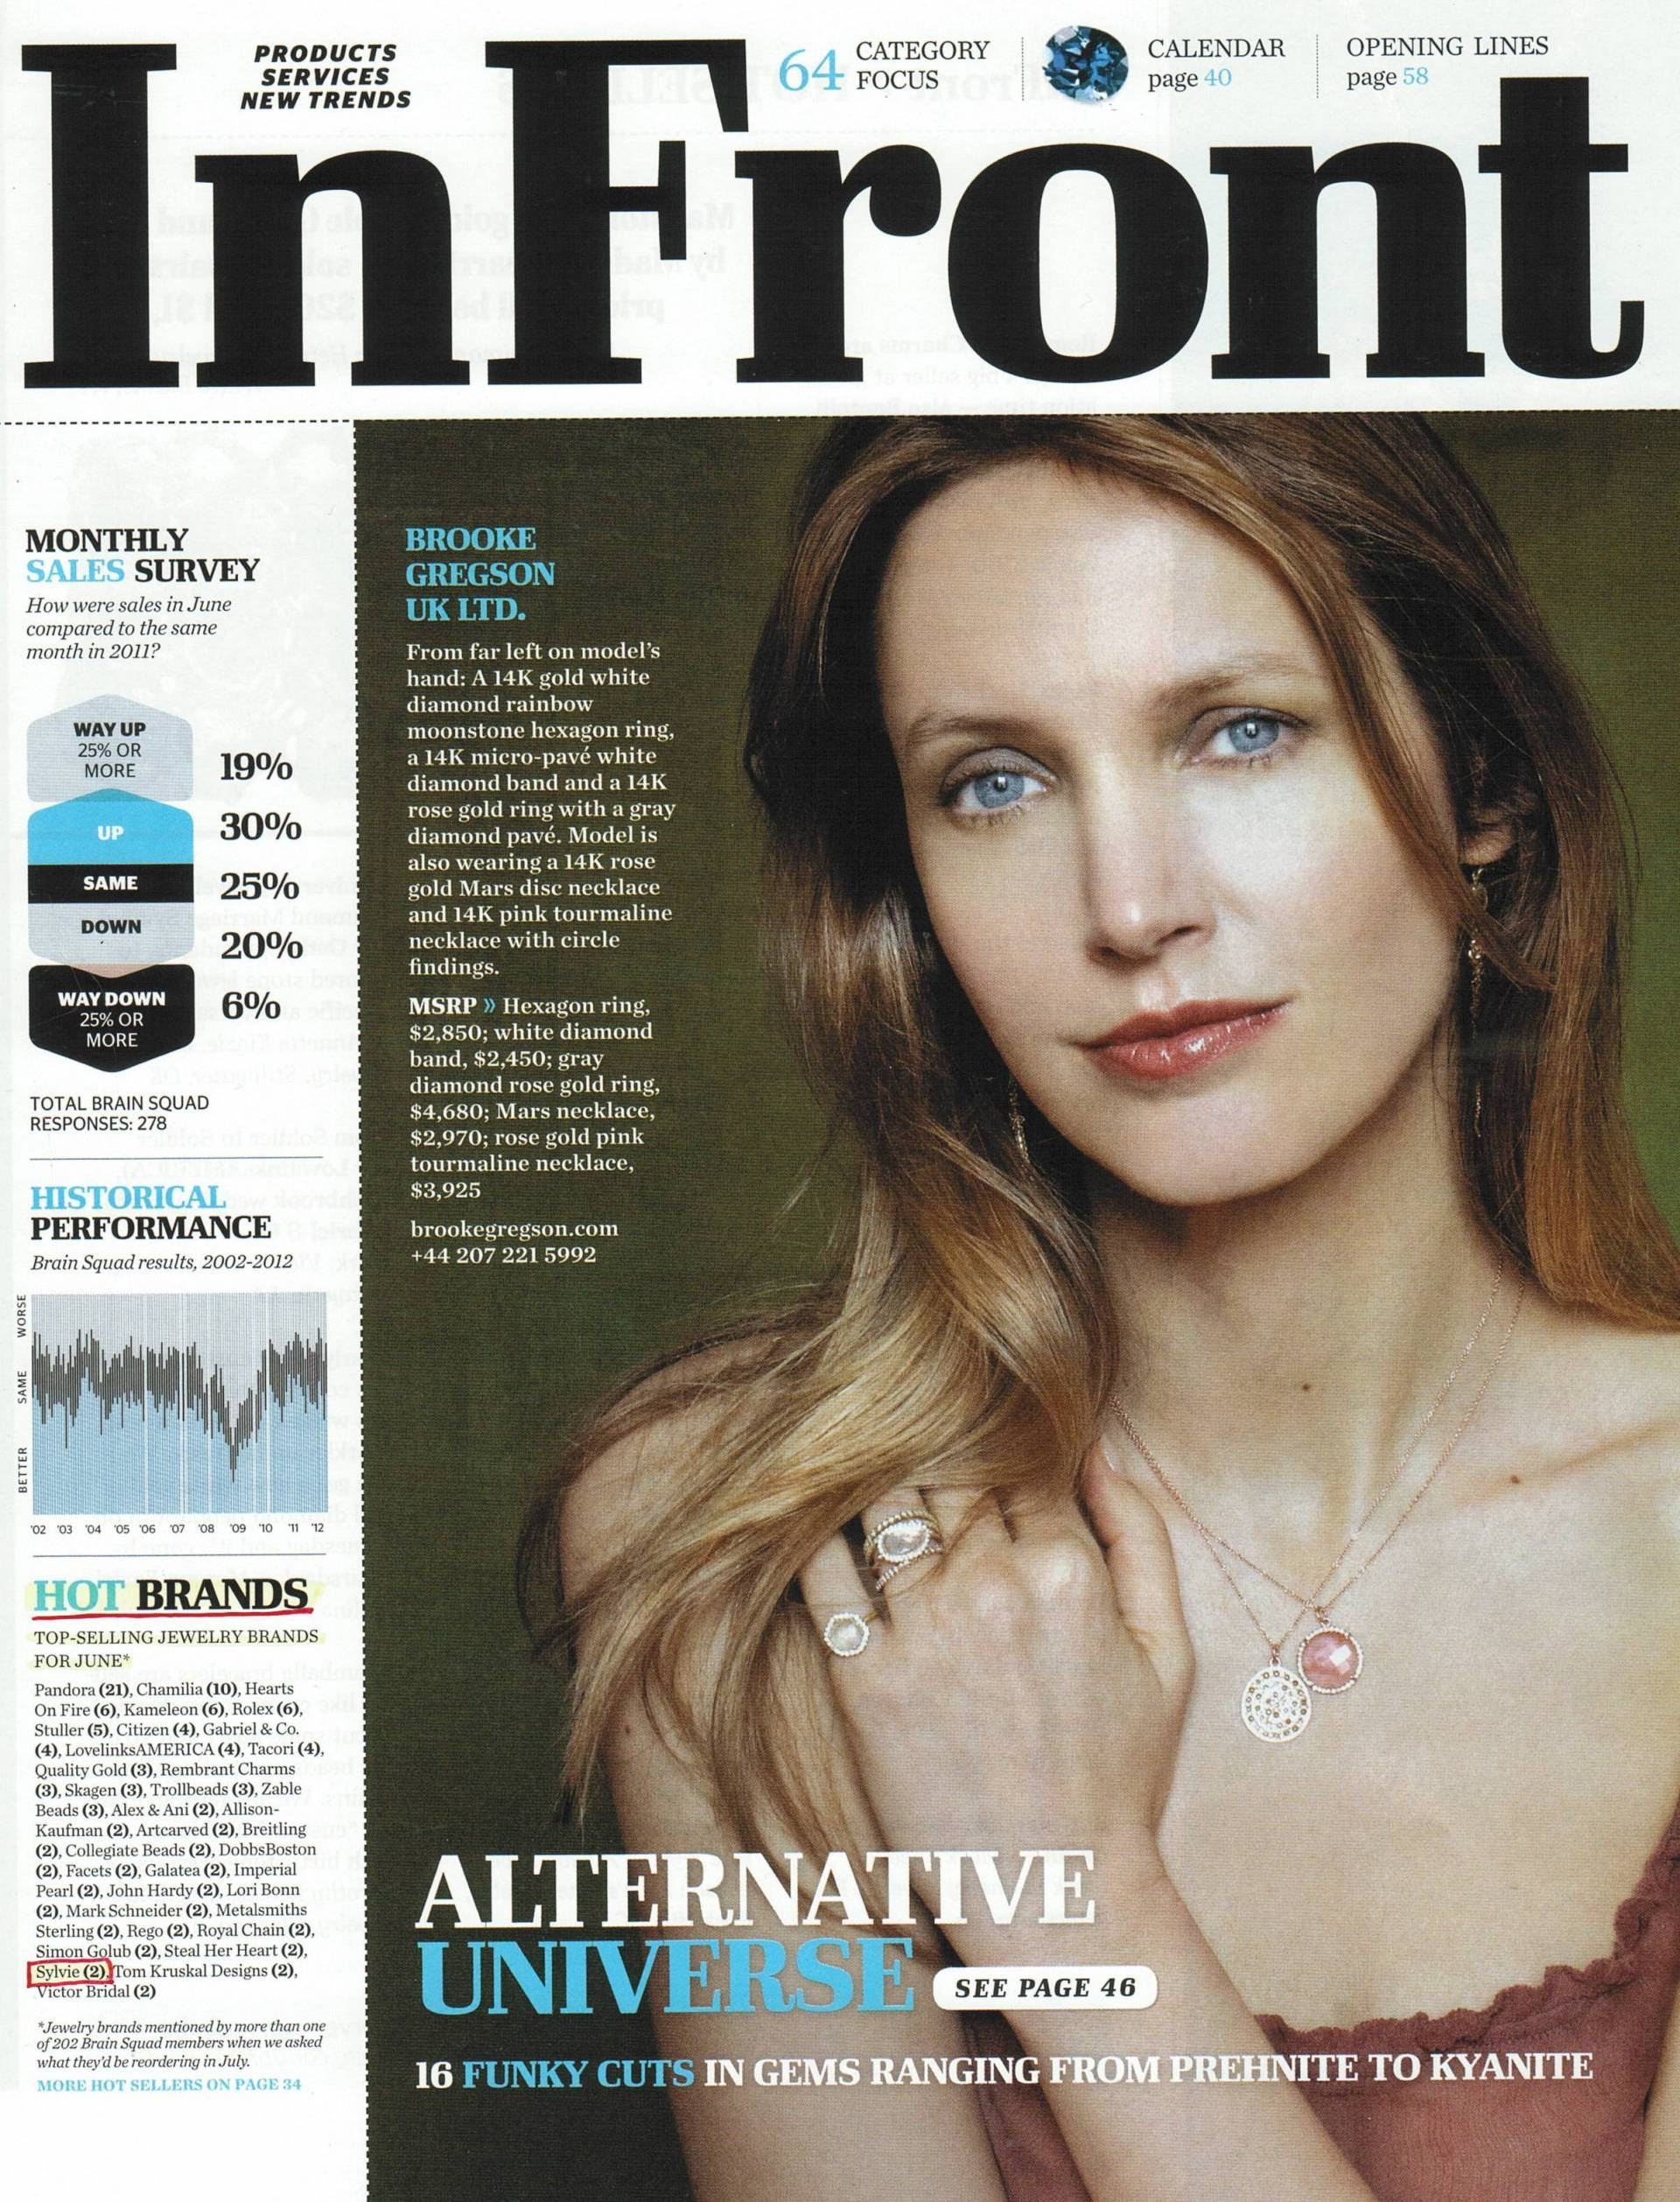 """Sylvie Featured in """"Hot Brands"""" InFront section of InStore Magazine"""